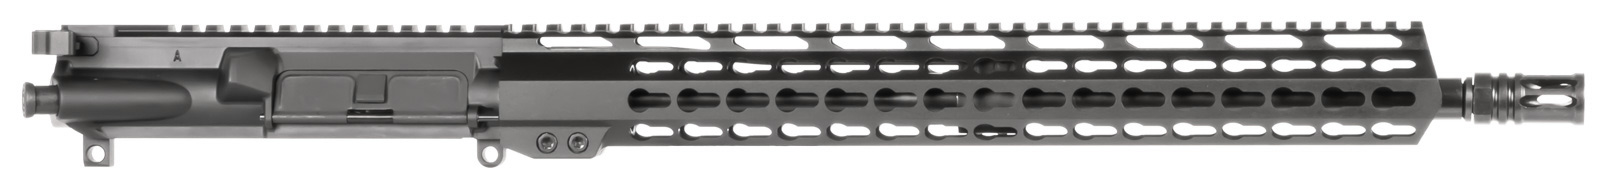 ar15-complete-upper-assembly-16-inches-5-56-nato-keymod-rail-160002